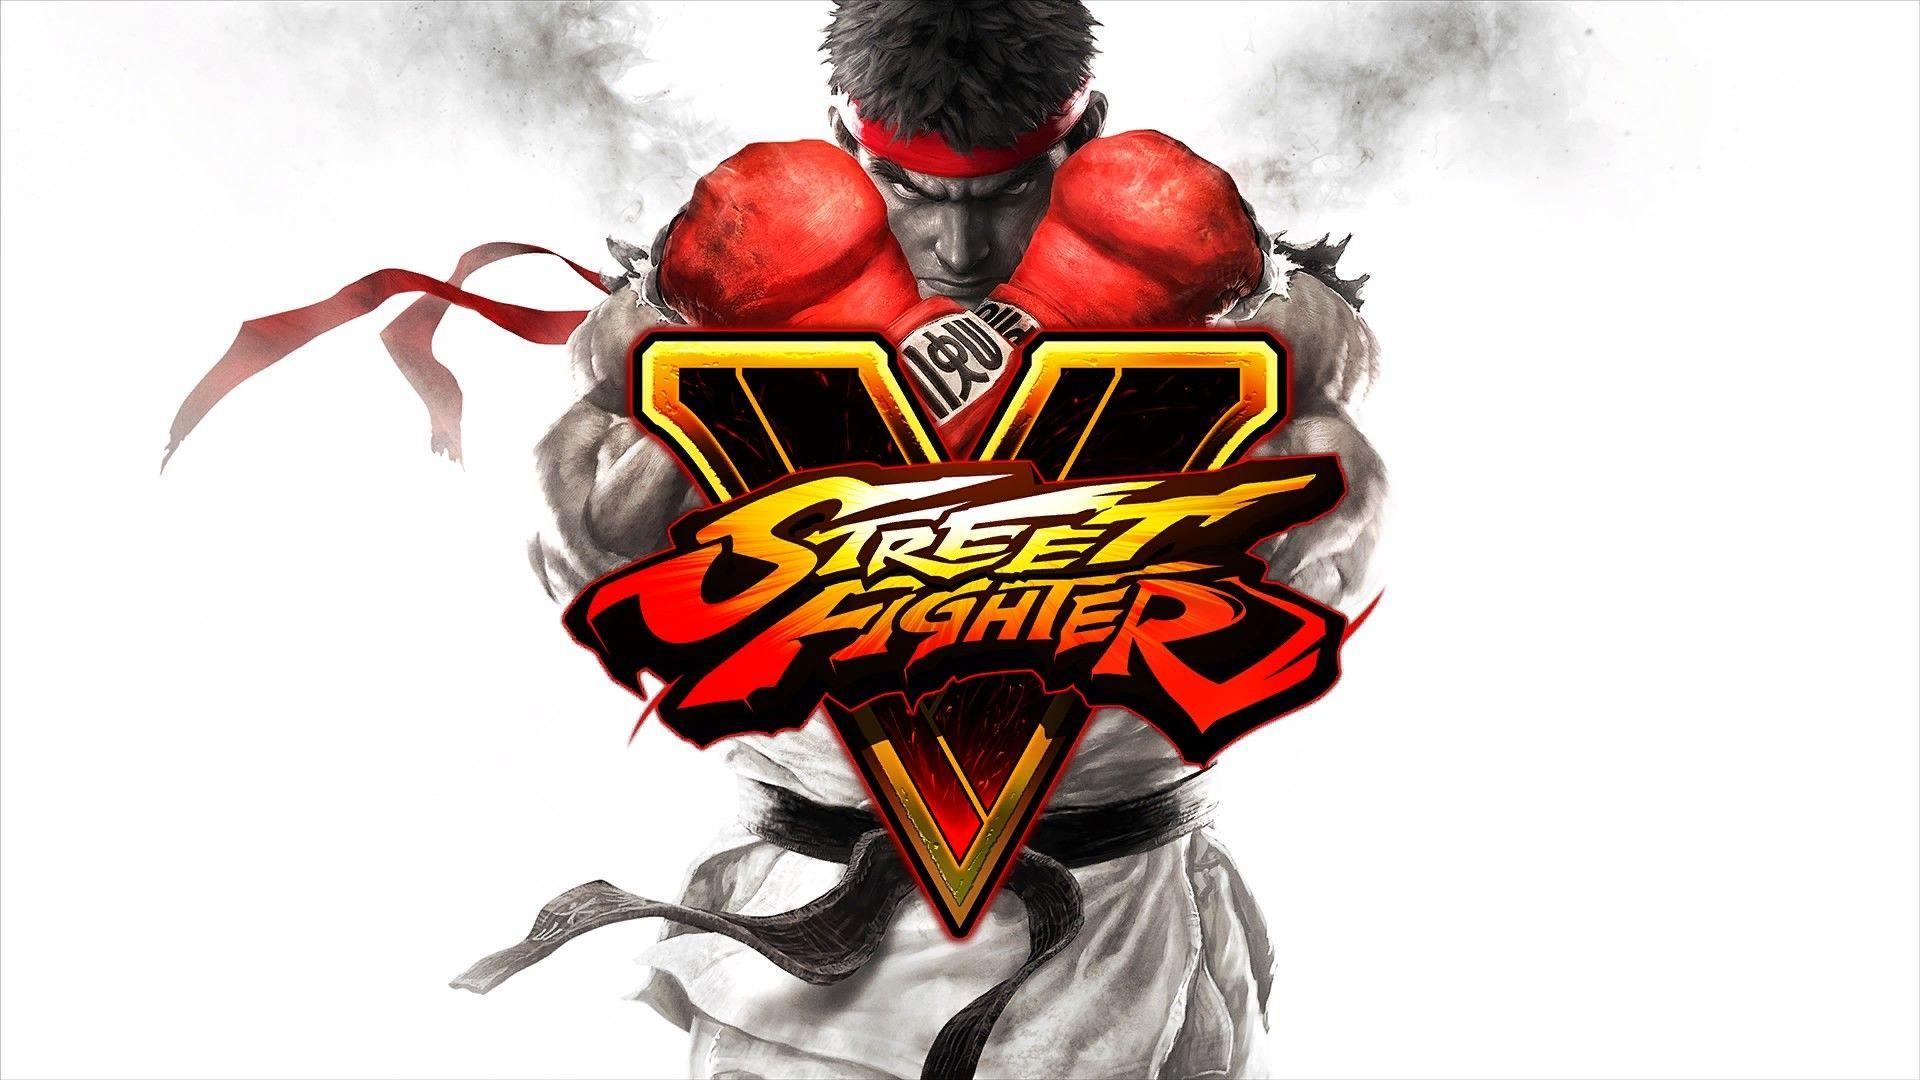 Wallpapers Full Hd Street Fighter Wallpaper Cave